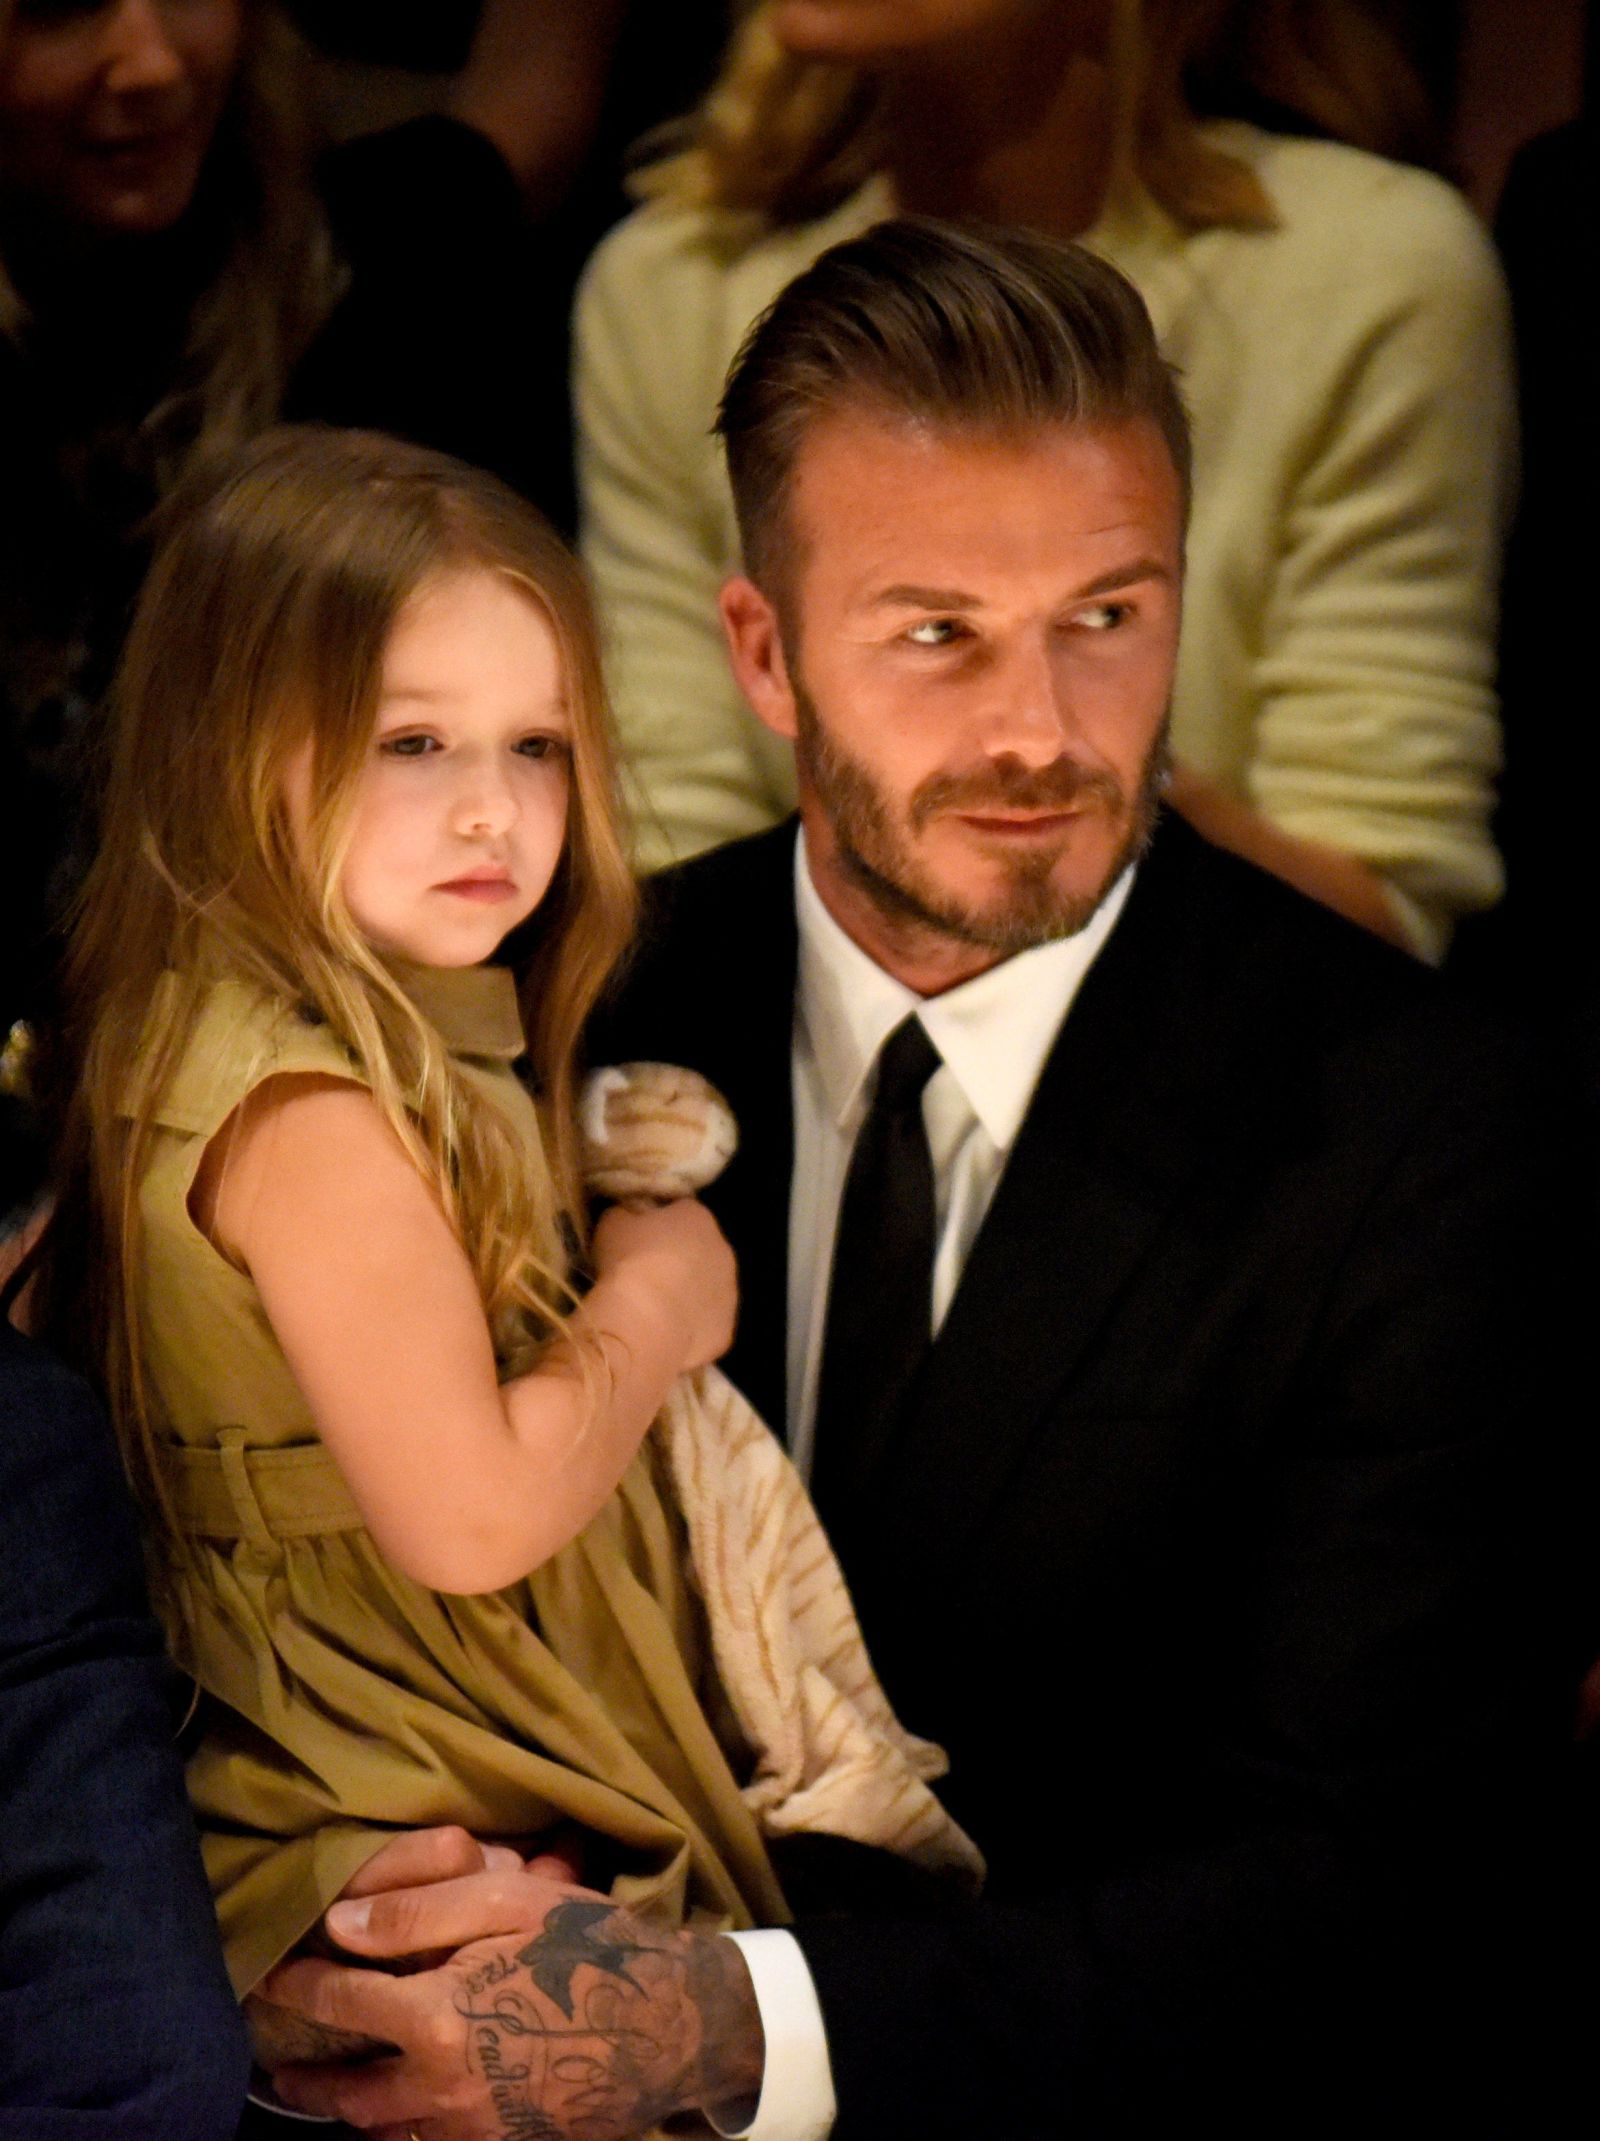 David Beckham Gives Harper Her First Soccer Lesson